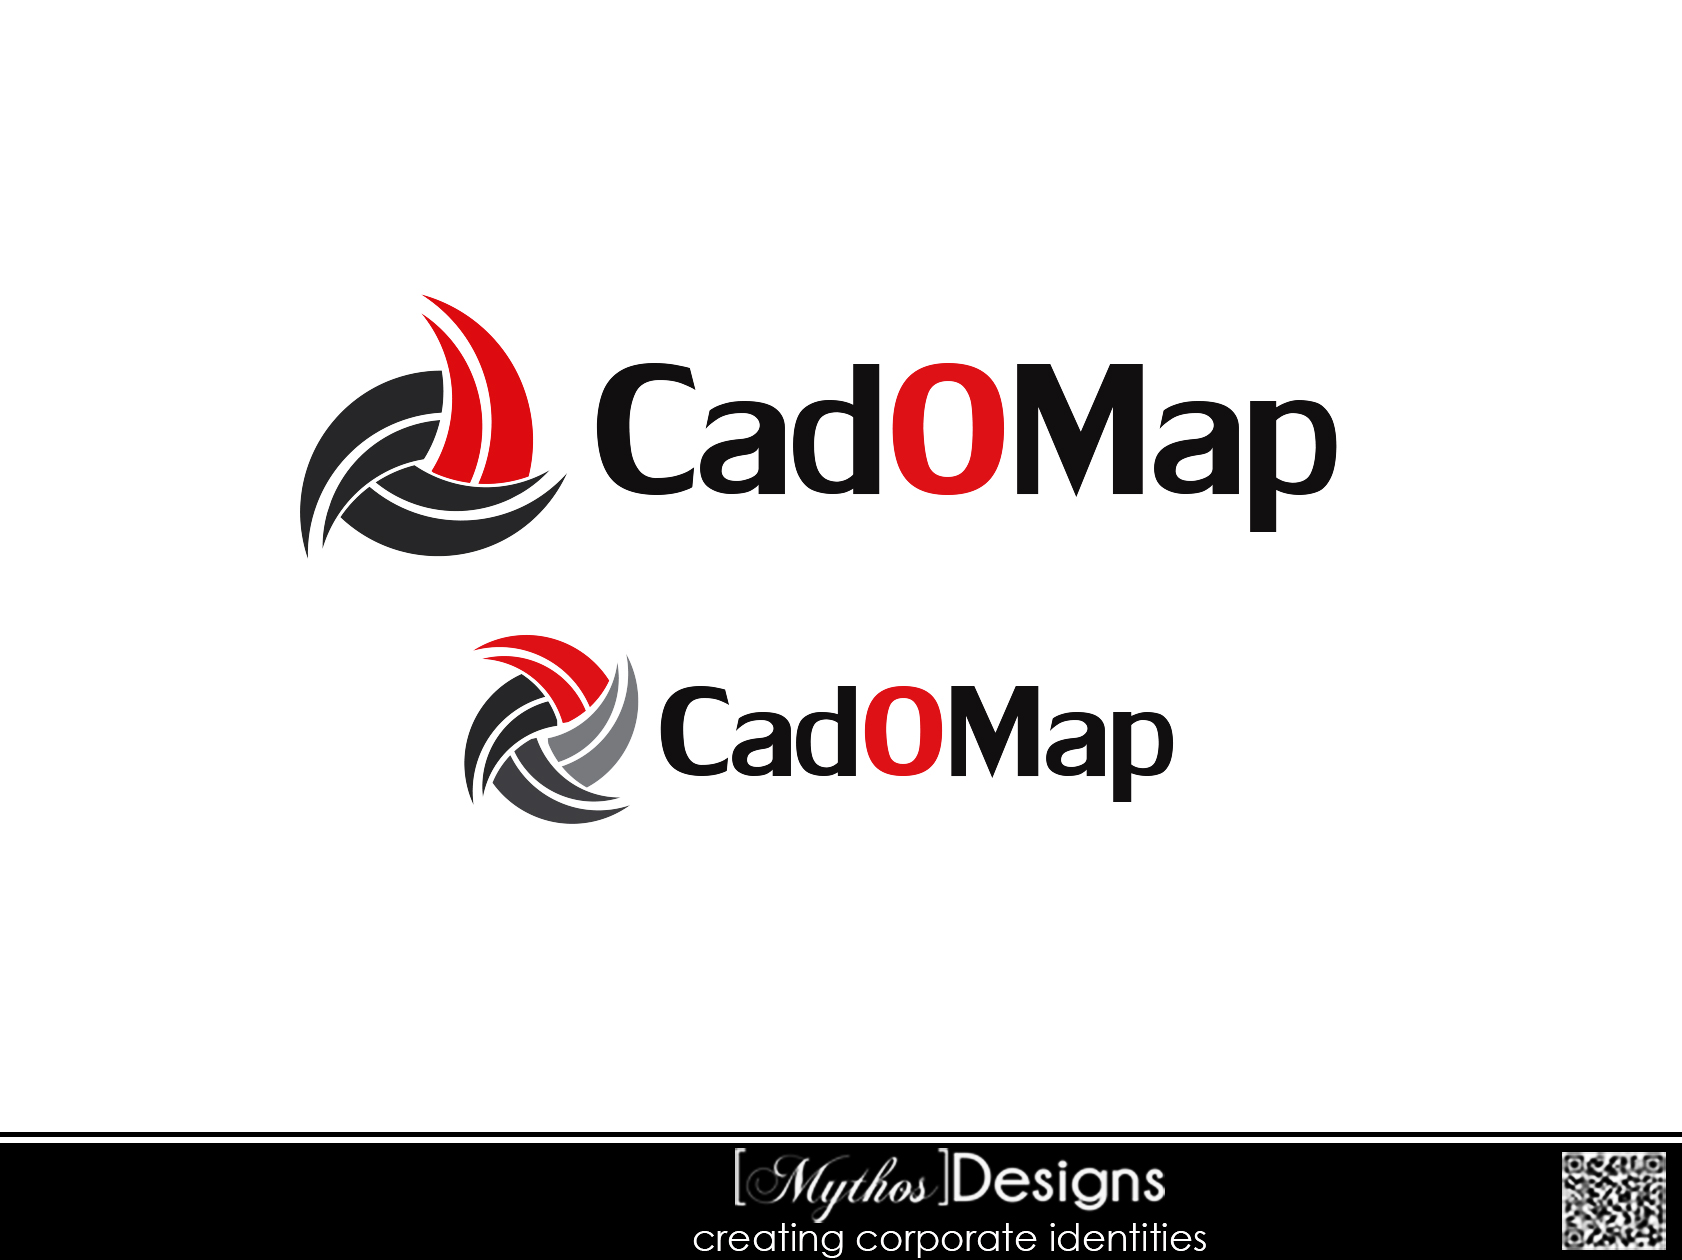 Logo Design by Mythos Designs - Entry No. 37 in the Logo Design Contest Captivating Logo Design for CadOMap software product.